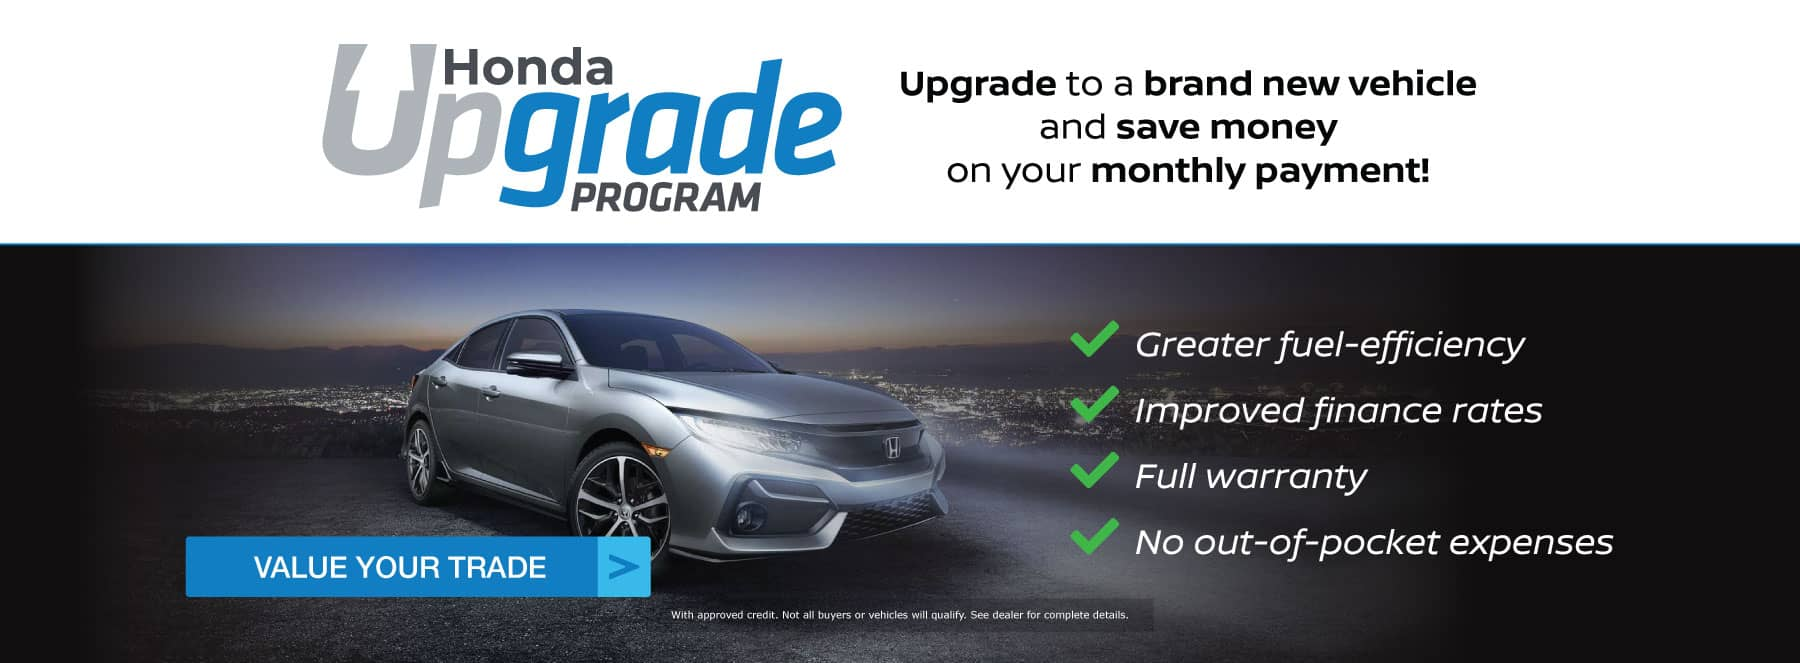 Honda Upgrade Program - save money on your monthly payment